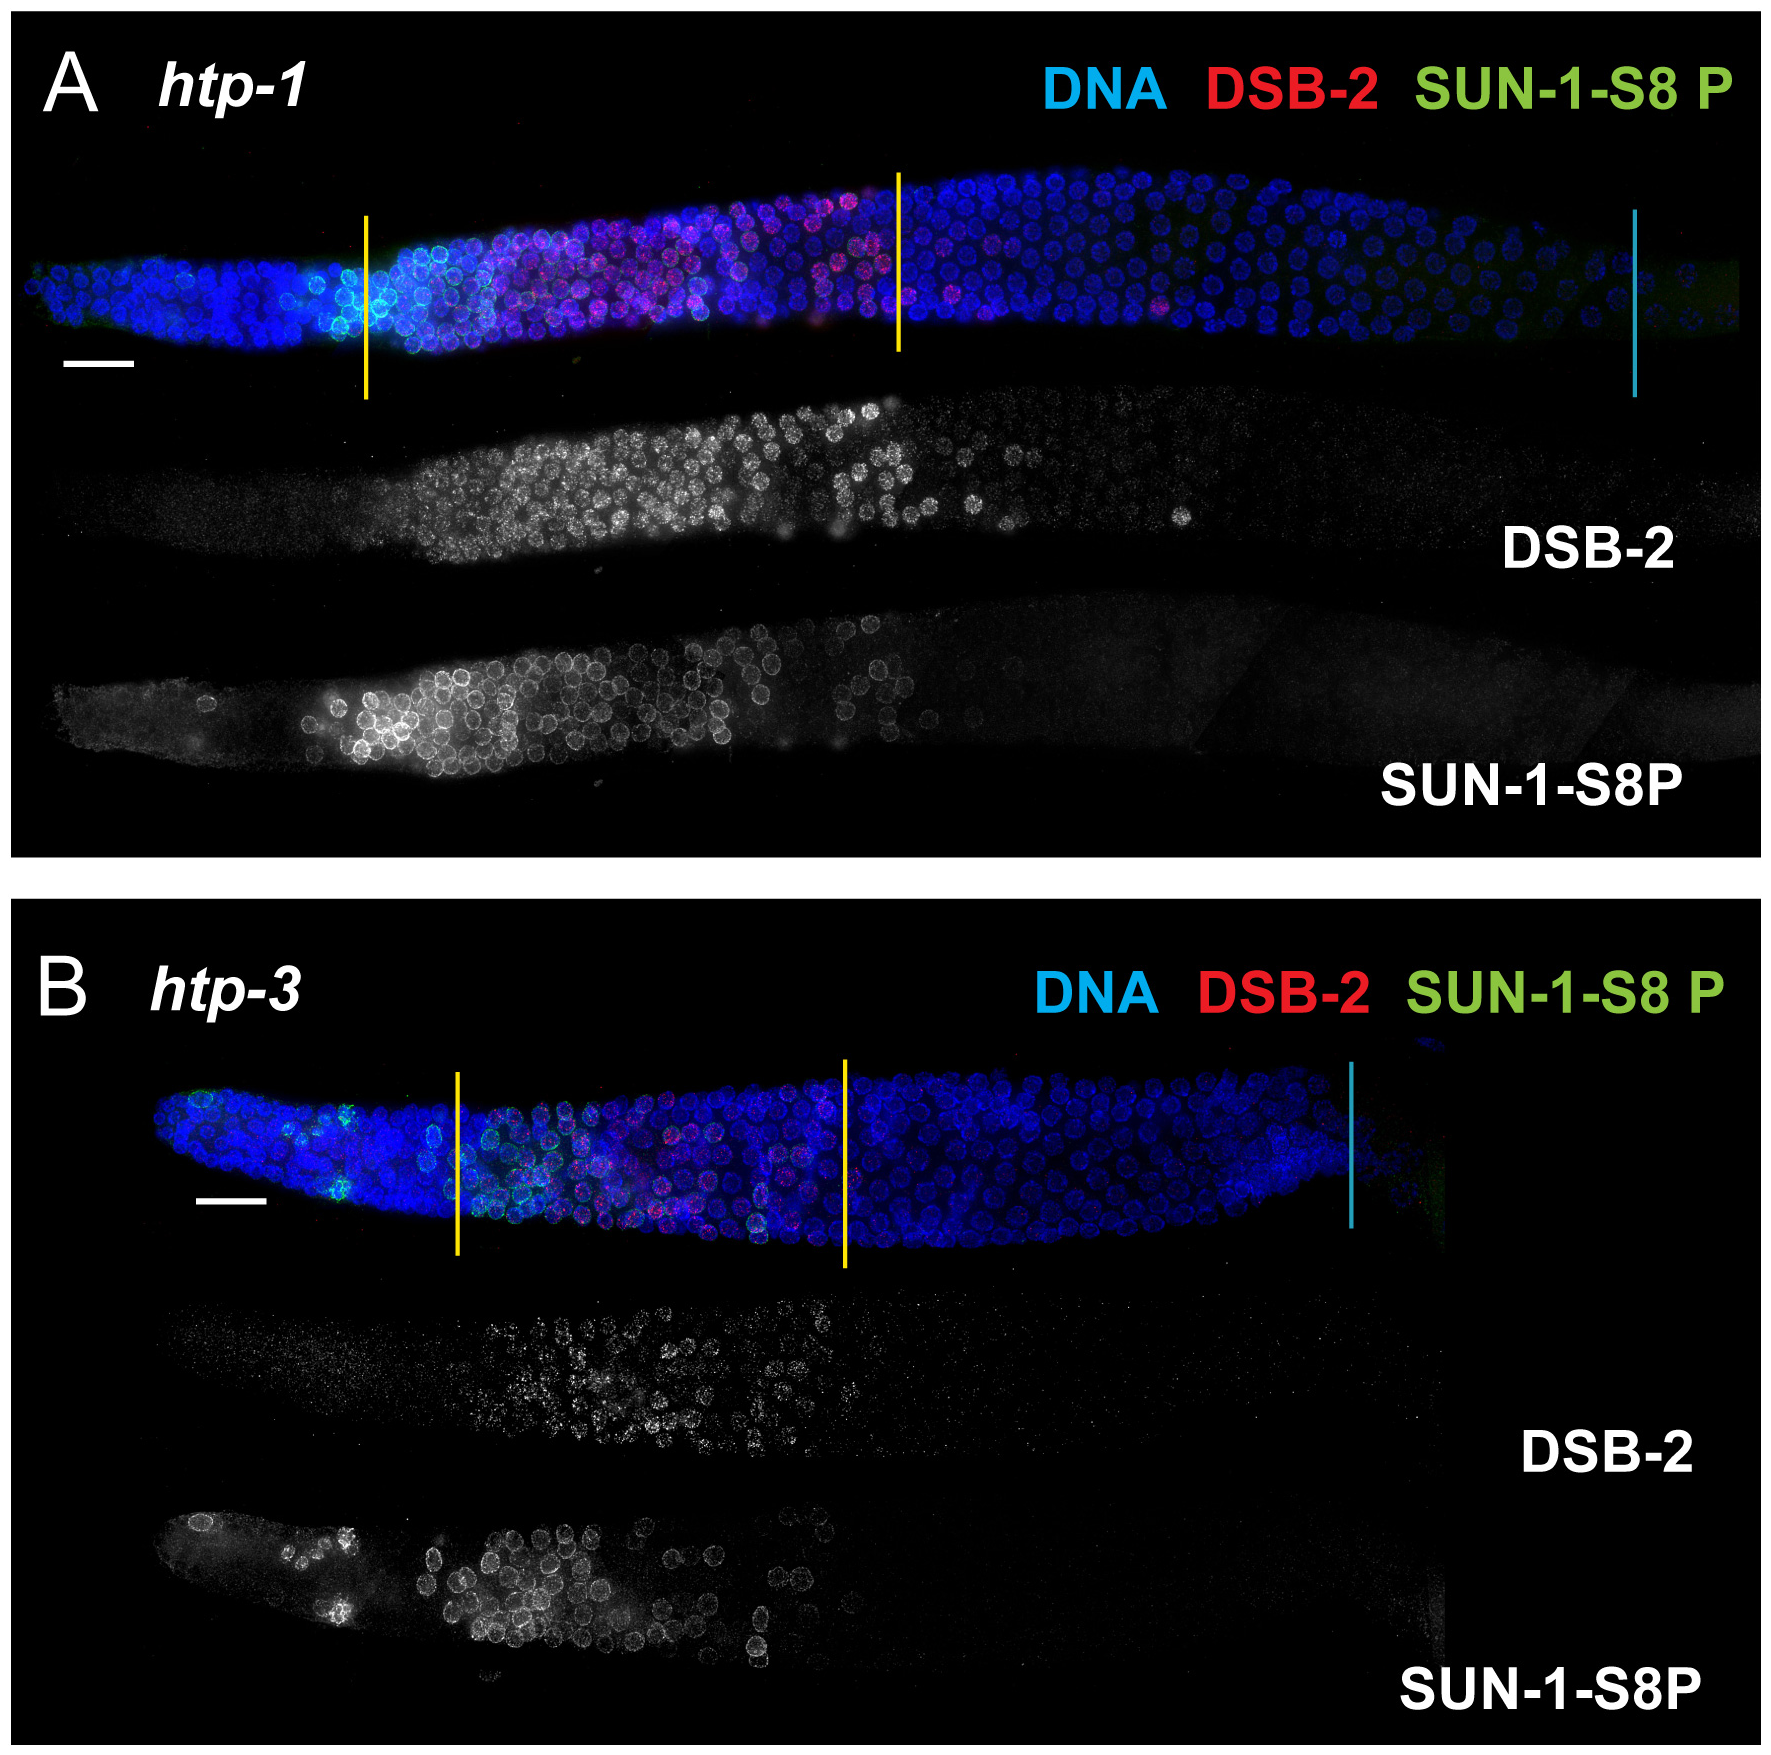 DSB-2 and SUN-1 S8P persistence requires axis proteins HTP-1 and HTP-3.